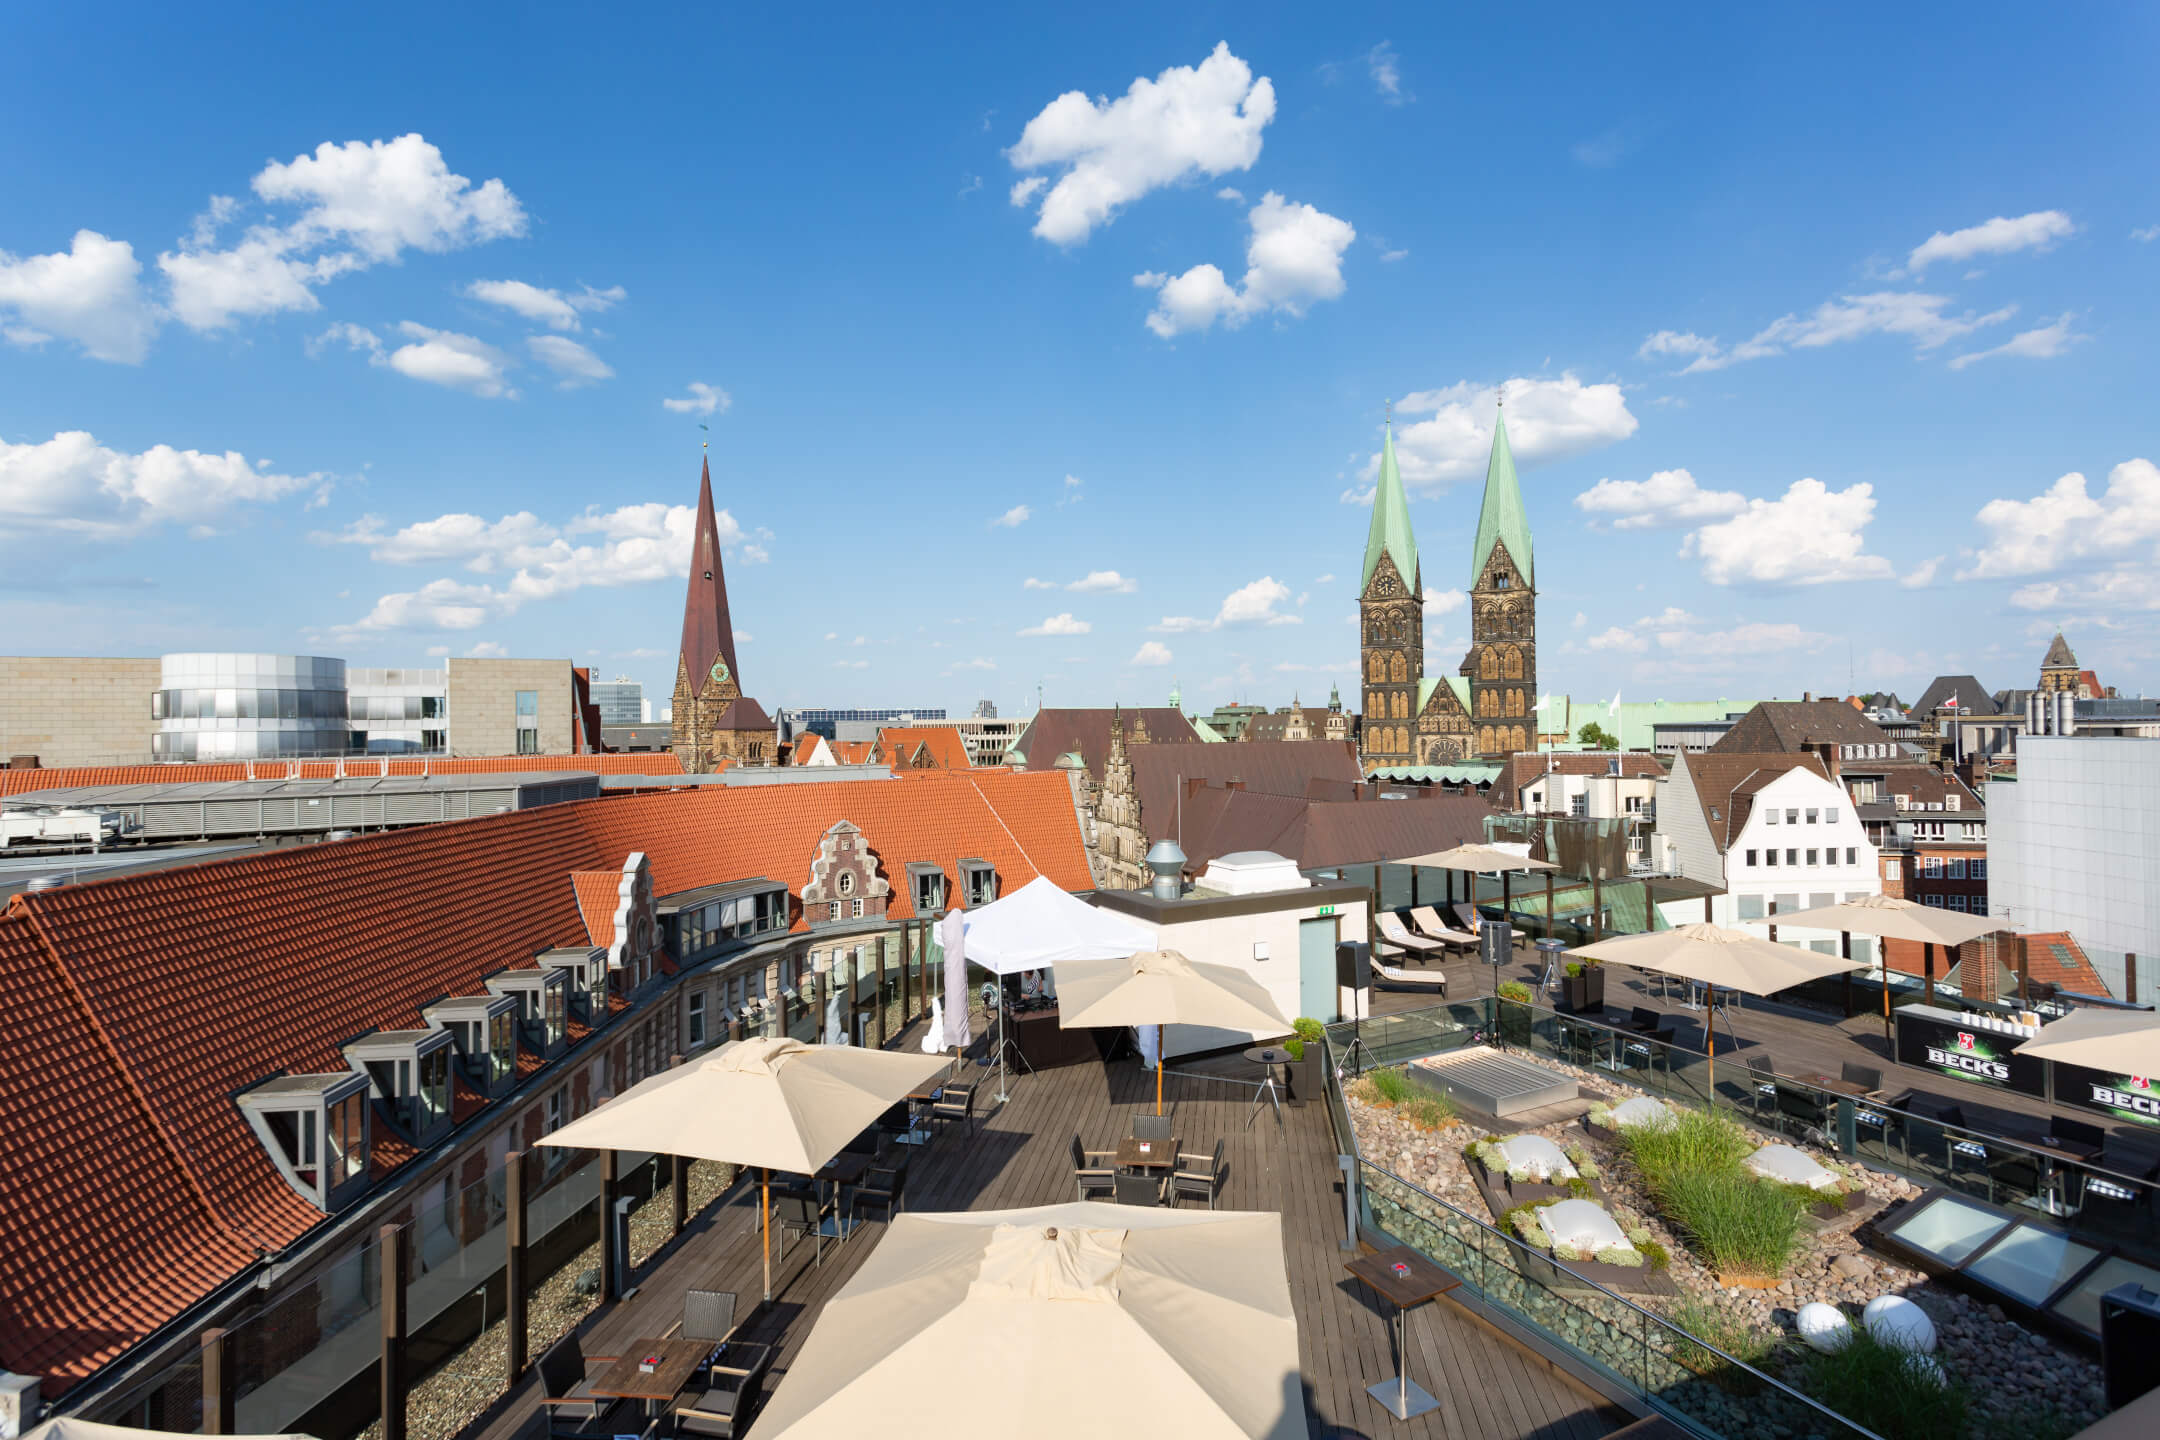 The view from the roof terrace over the rooftops of Bremen